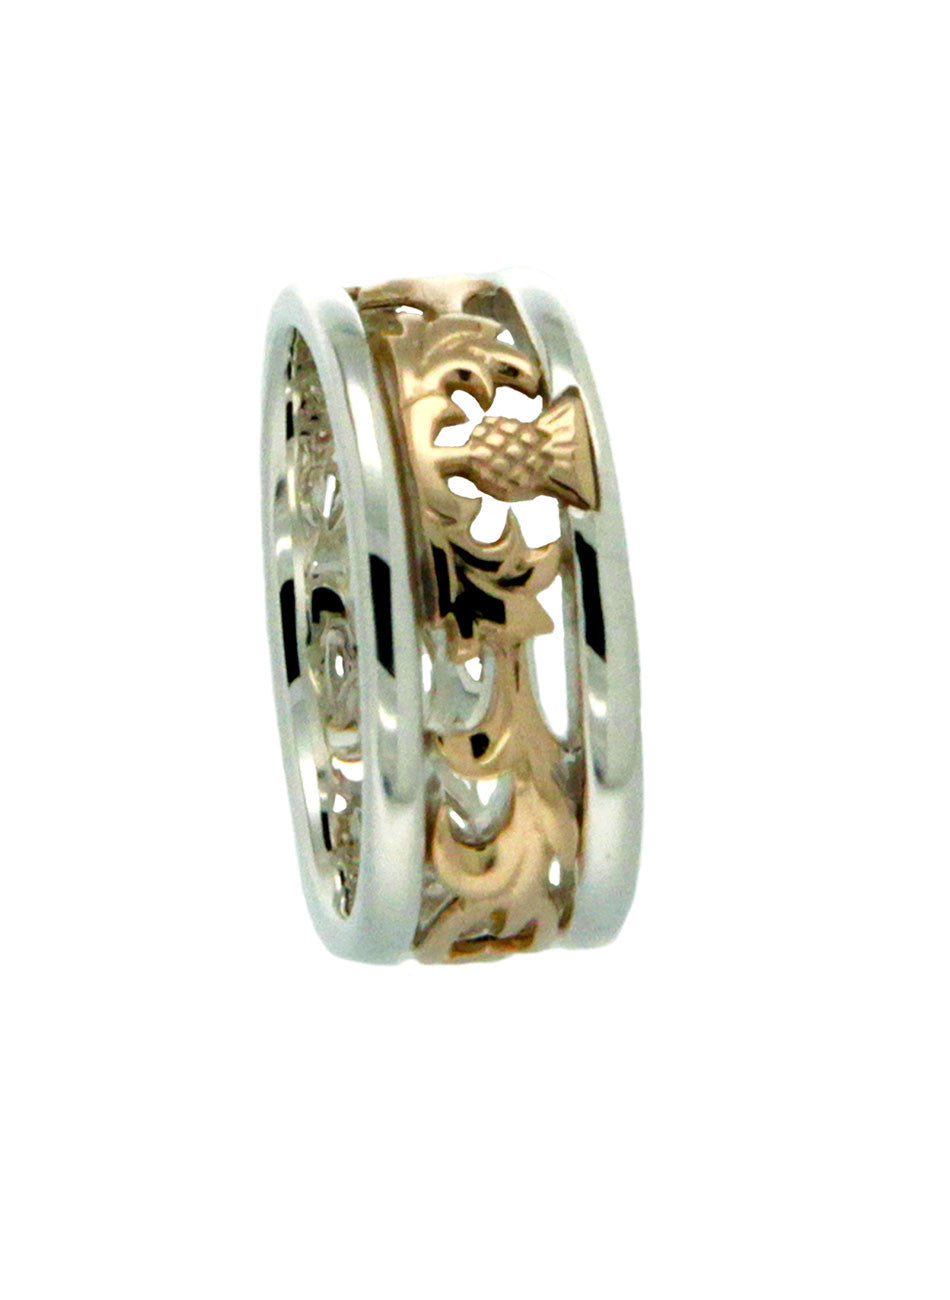 Scottish Thistle Band Ring 14k - 2 Tone